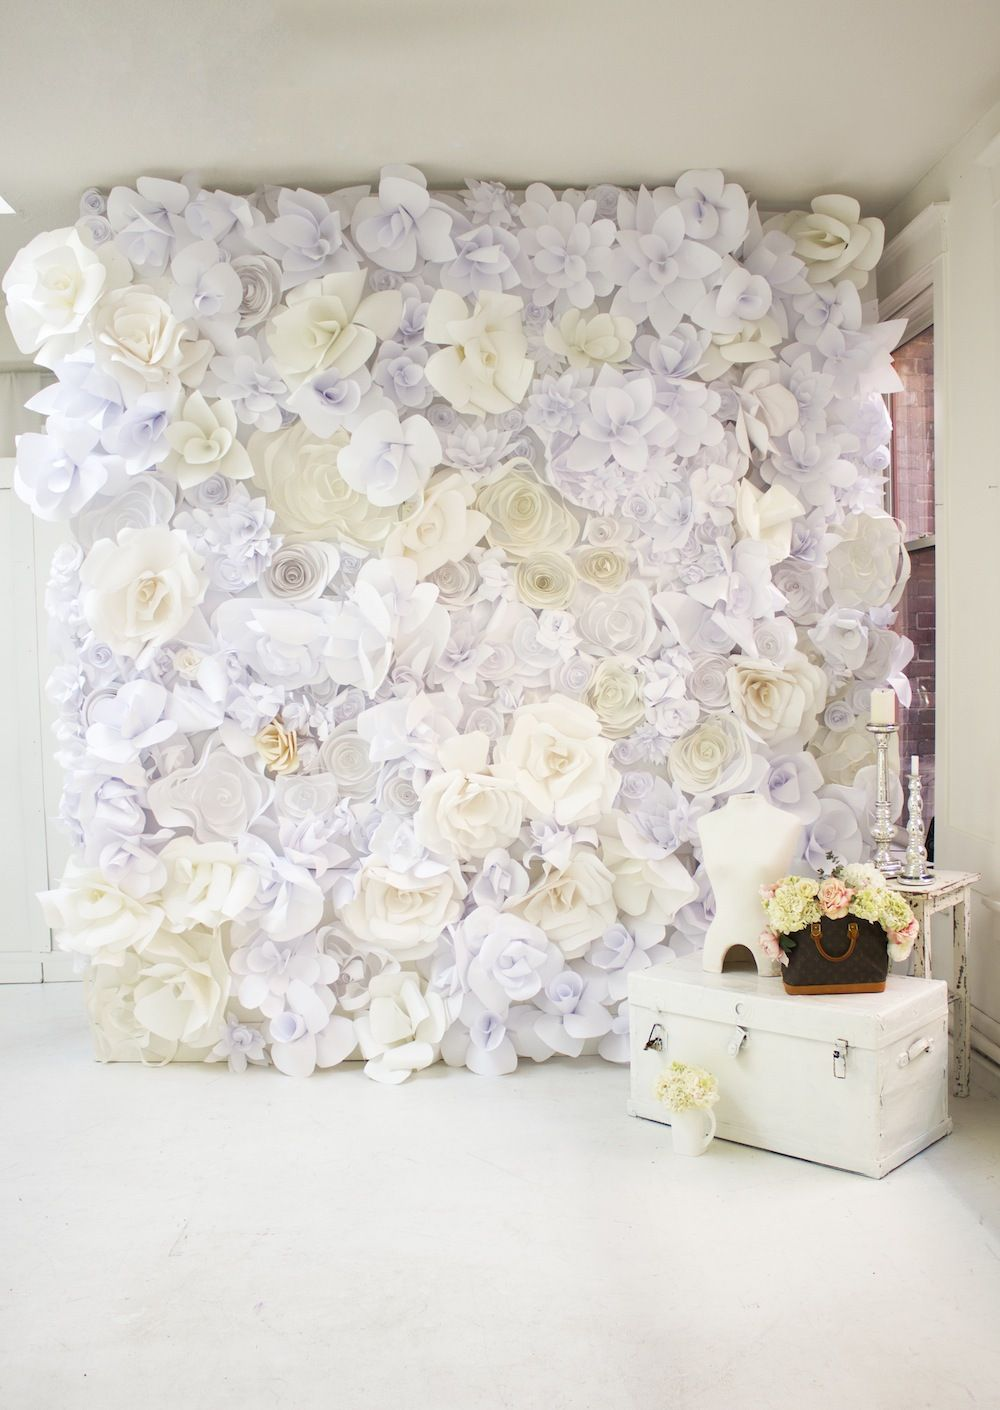 Paper wedding decoration ideas  Ladies get your glue guns hot and ready we are about to make this